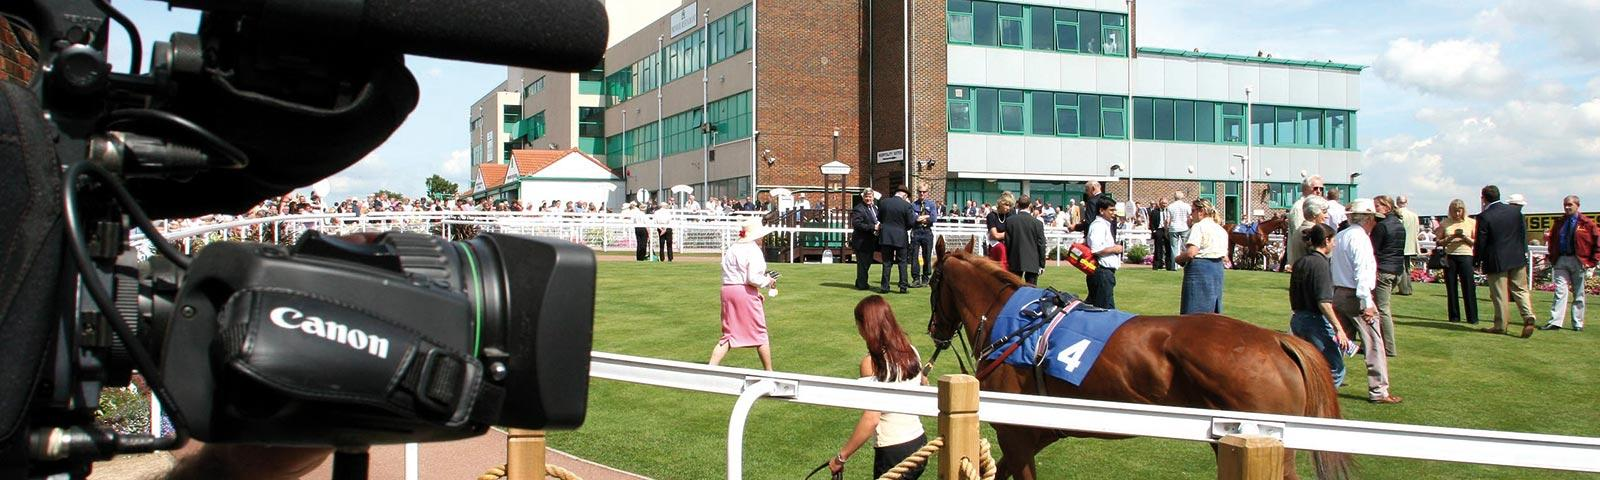 Camera man filming the parade ring